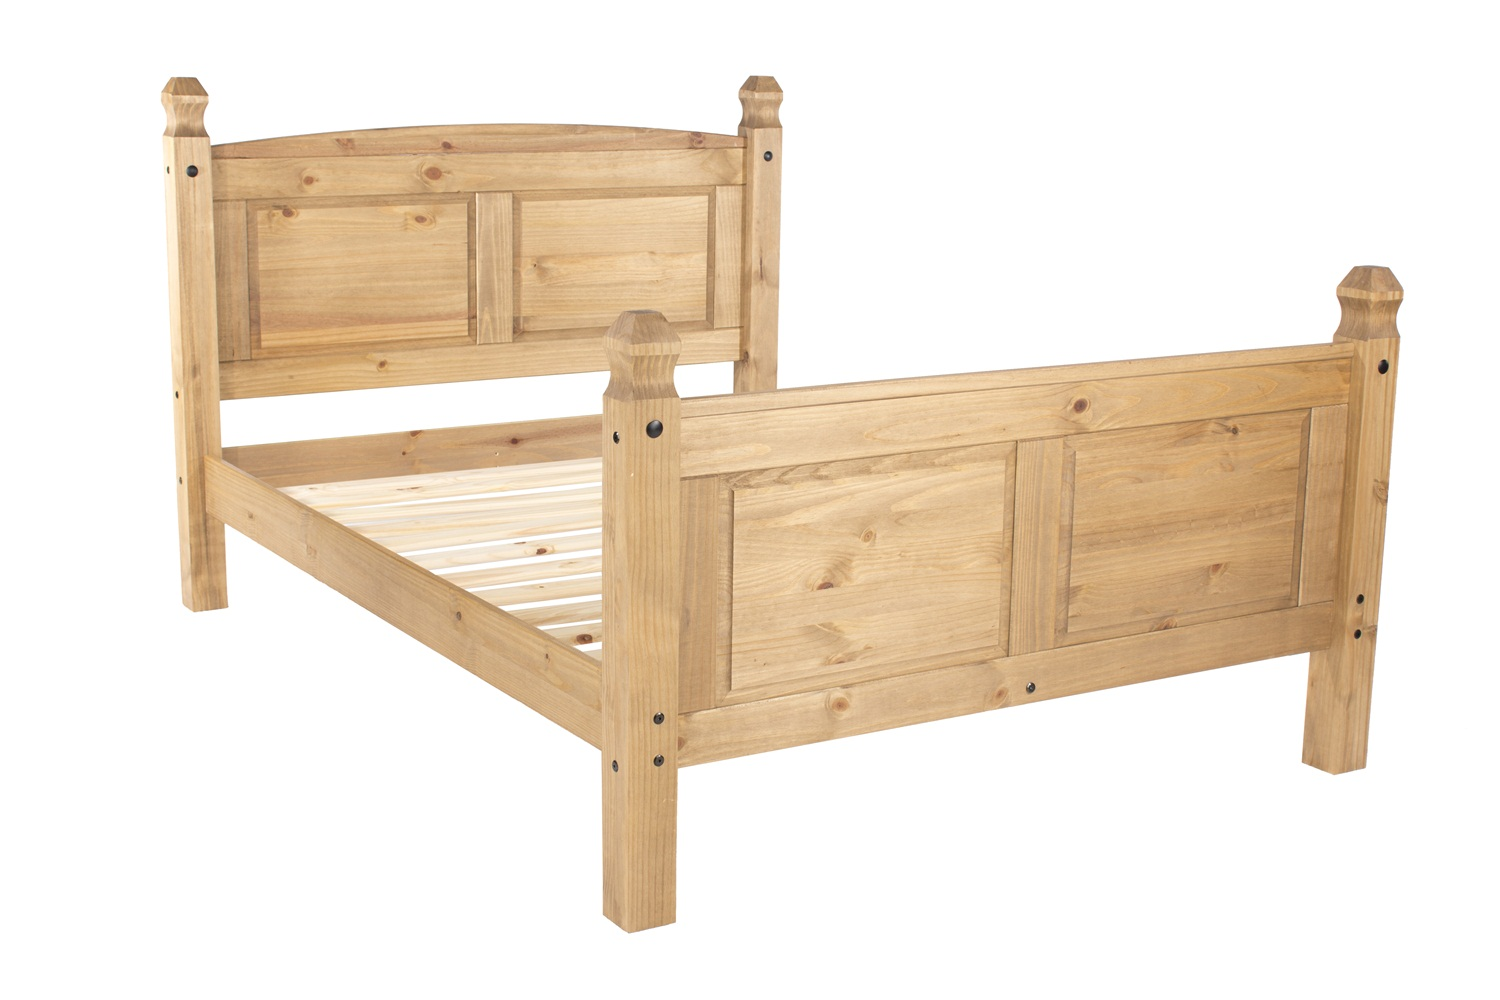 5′ high end bedstead